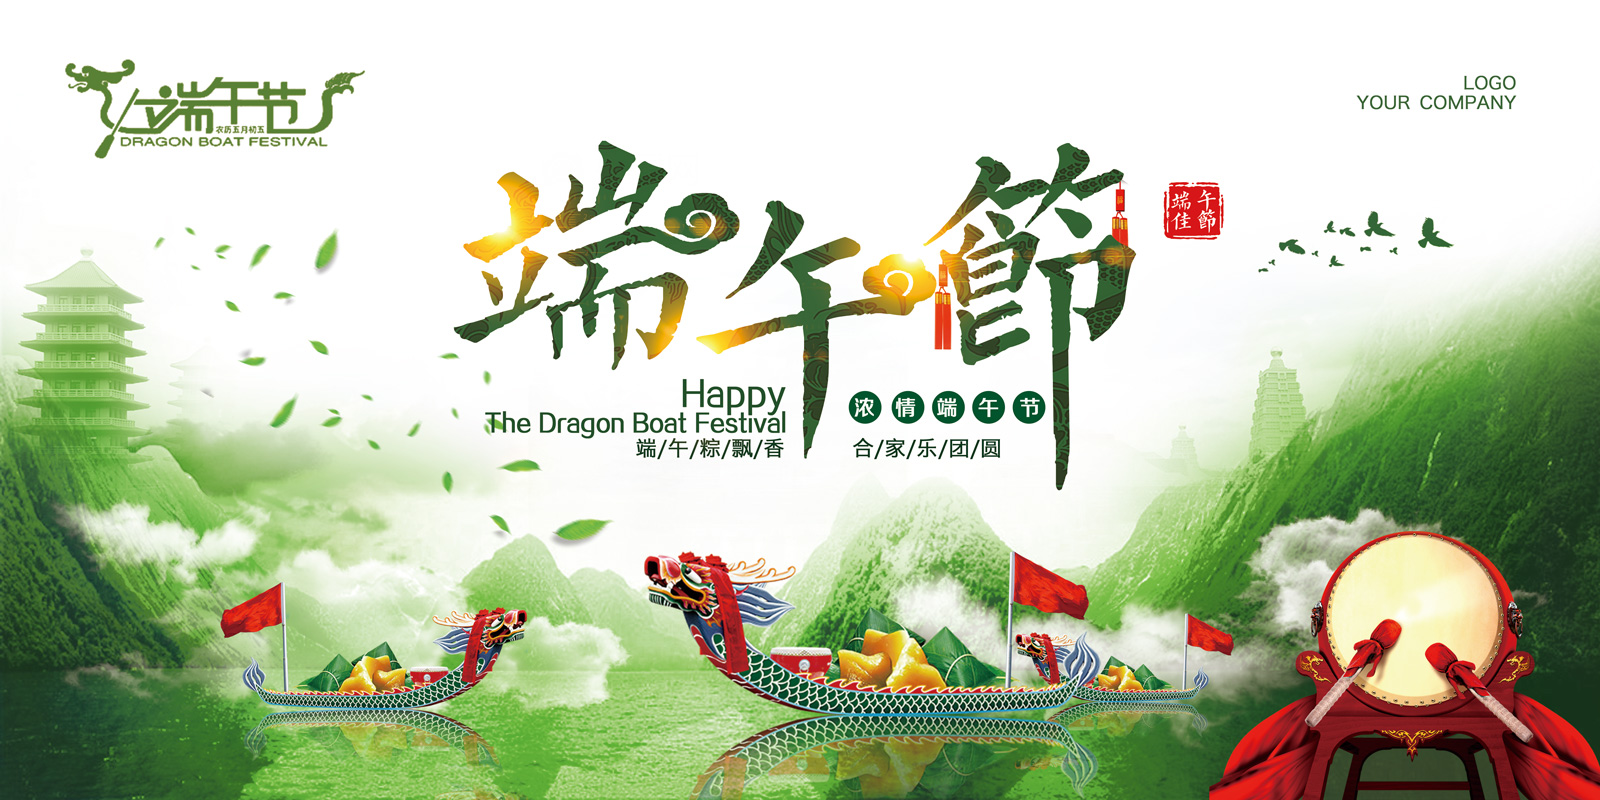 0002154212 Celebrate Chinas Dragon Boat Festival PSD File Free Download traditional custom the waves the source text the fog the fifth the Dragon Boat Festival poster The Dragon Boat Festival rowing reed leaves psd Poster Design eating zongzi dragon boat reed and reed dragon boat flyer Dragon Boat Festival promotion Dragon Boat Festival dragon boat and zongzi dragon boat advertising festival advertising design templates